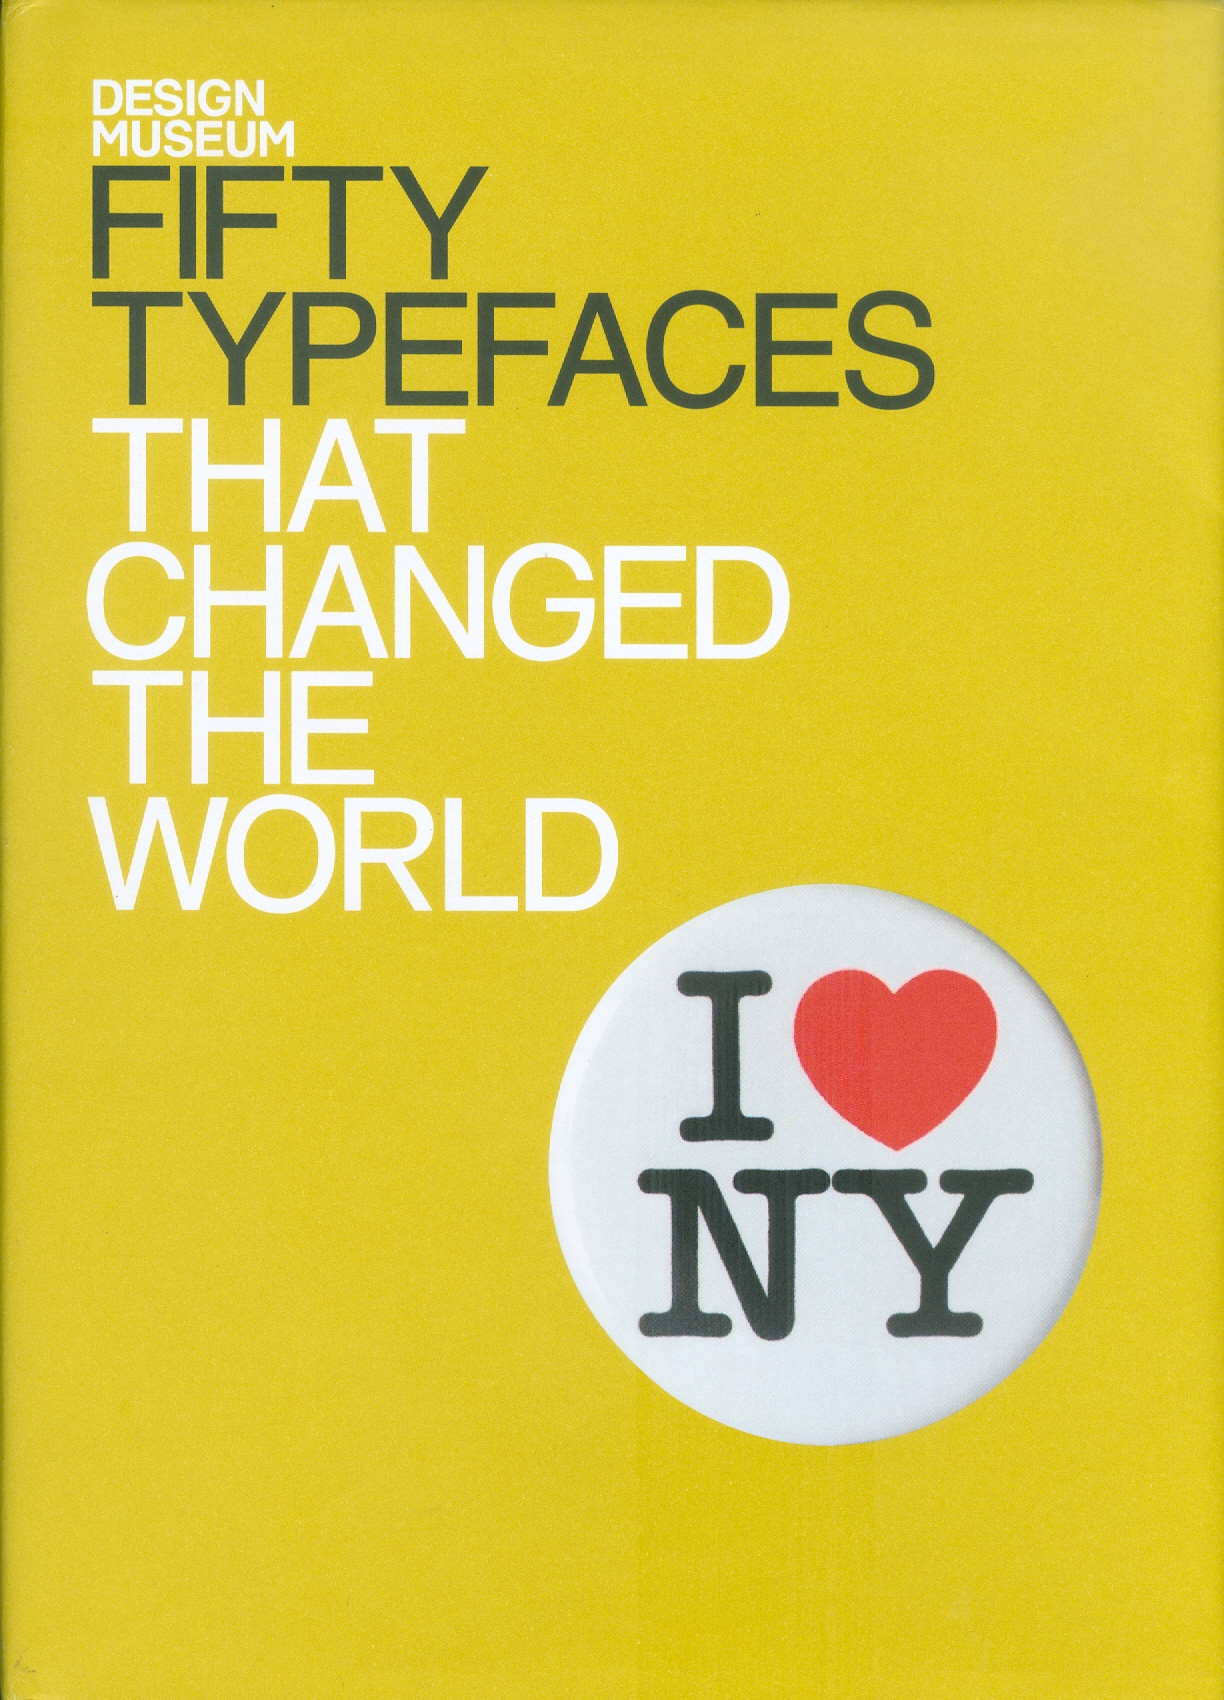 fifty typefaces0001.jpg